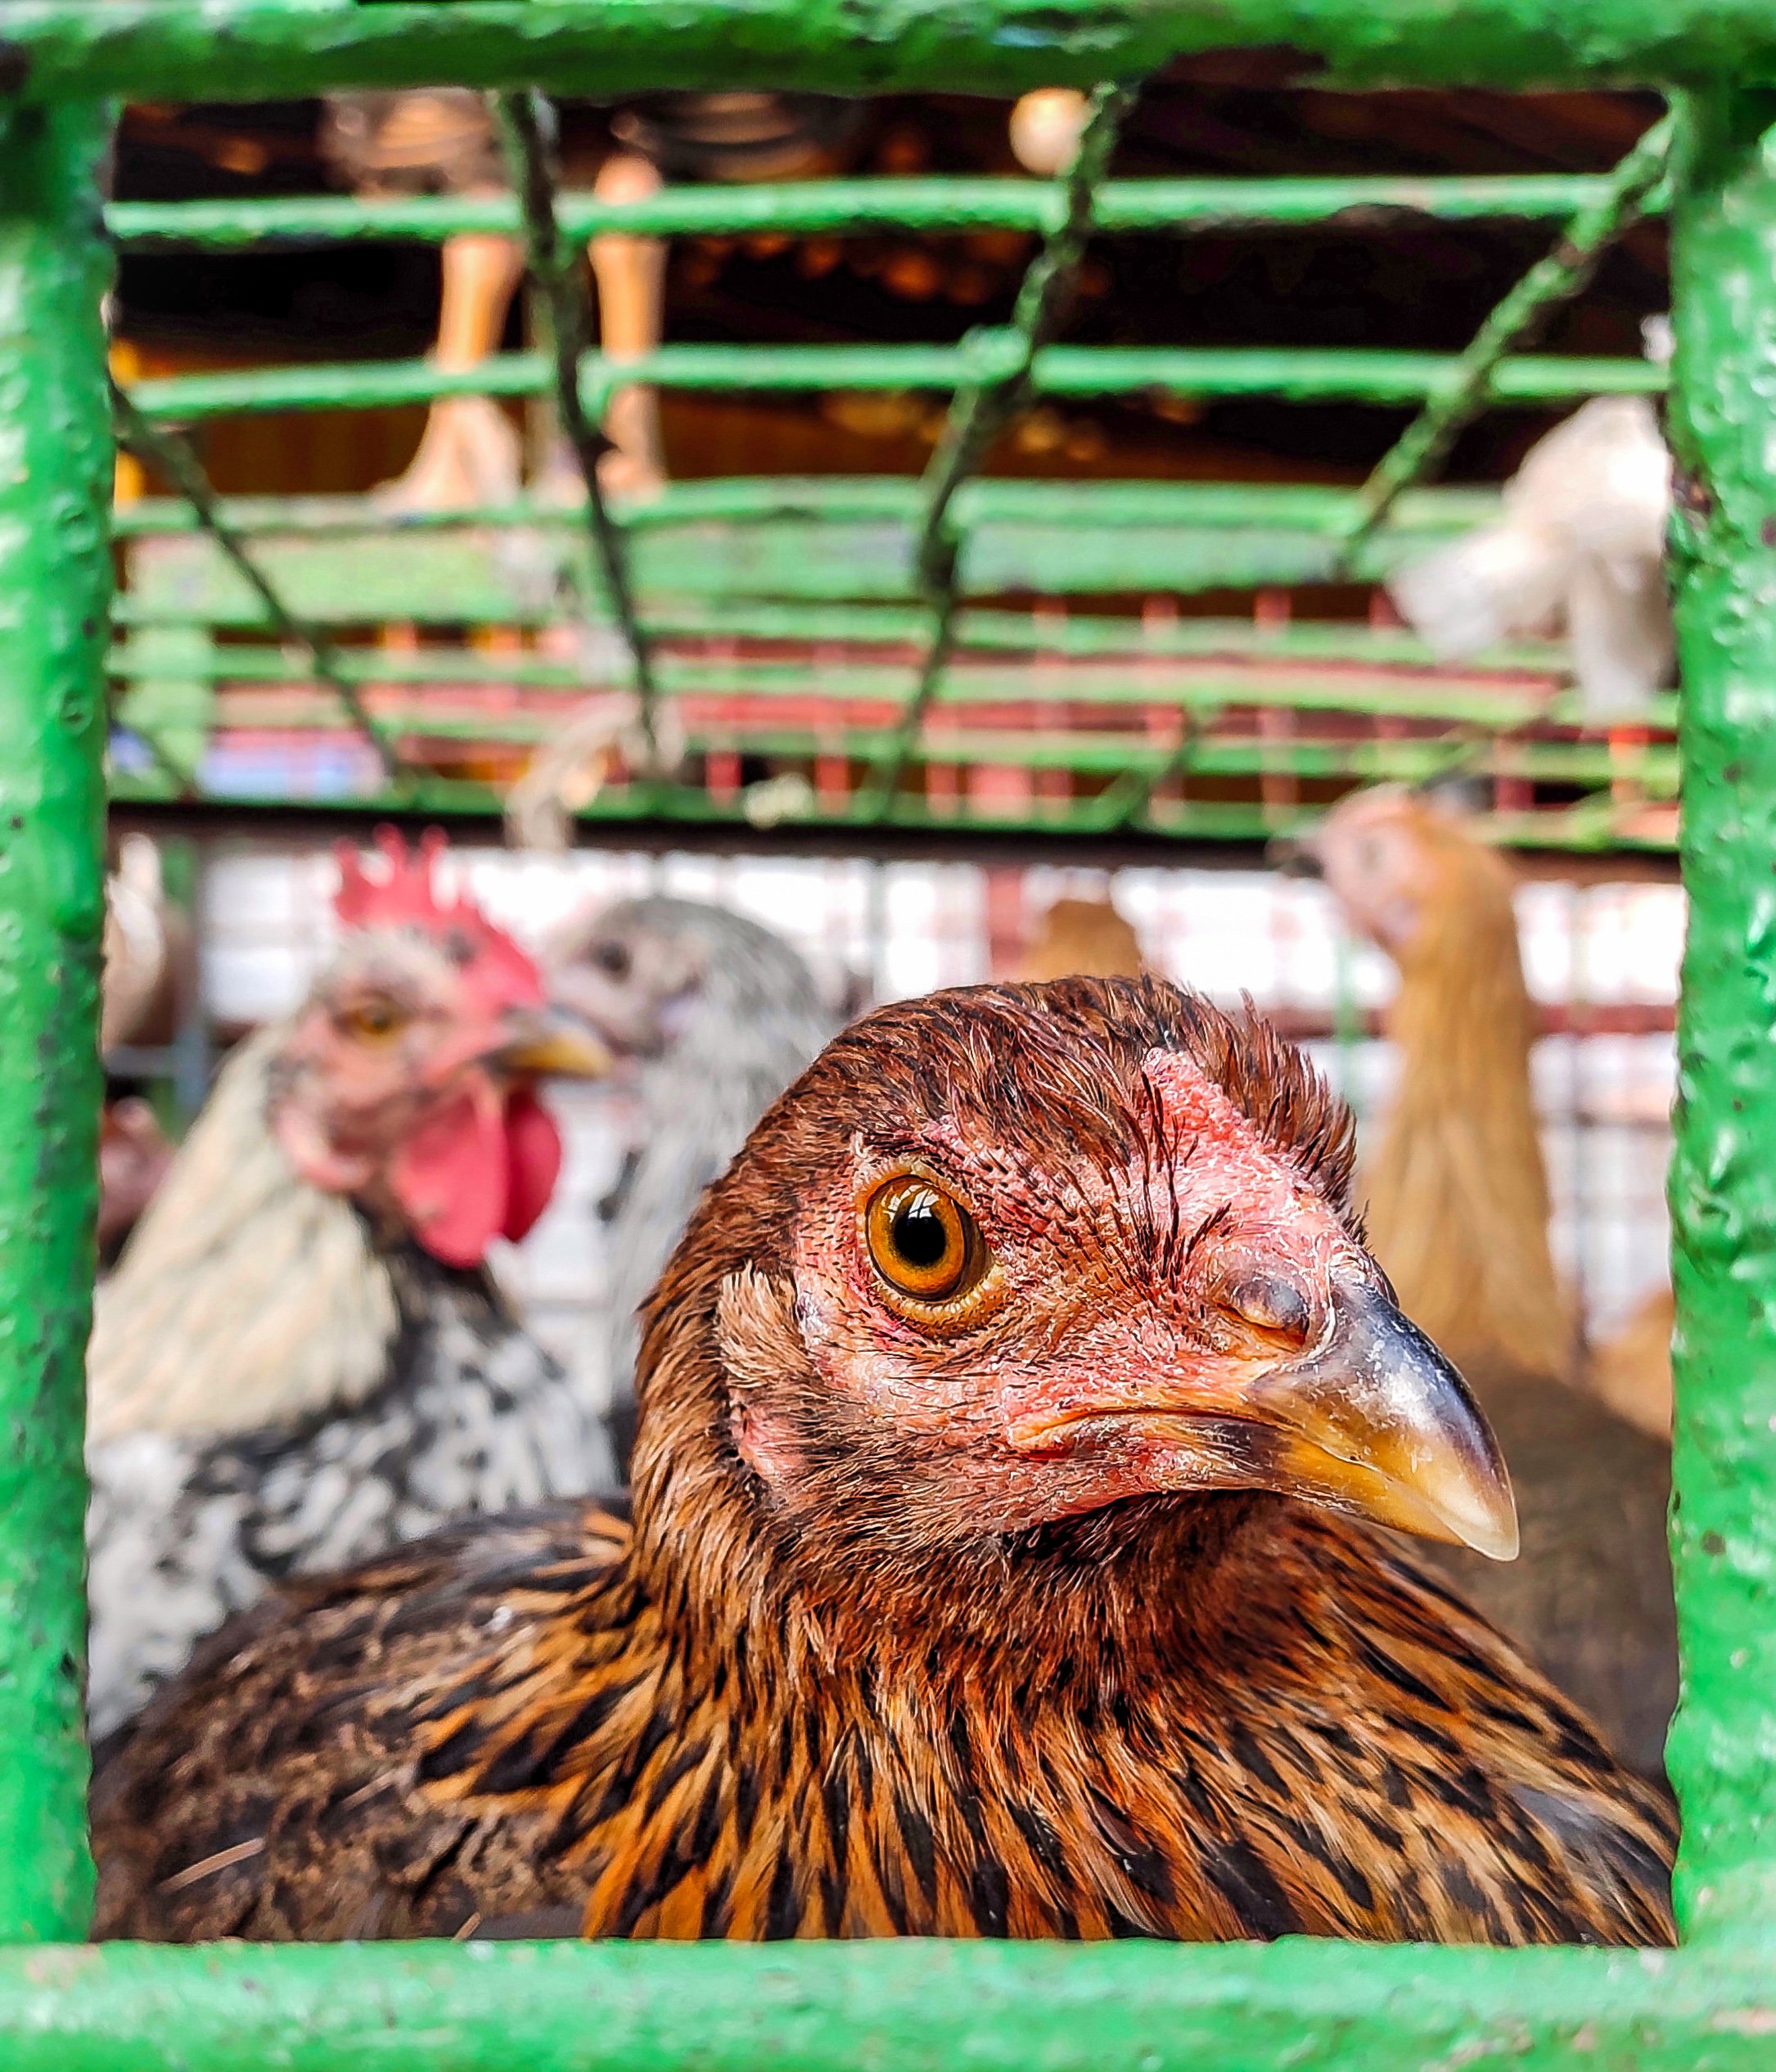 Hen in a cage